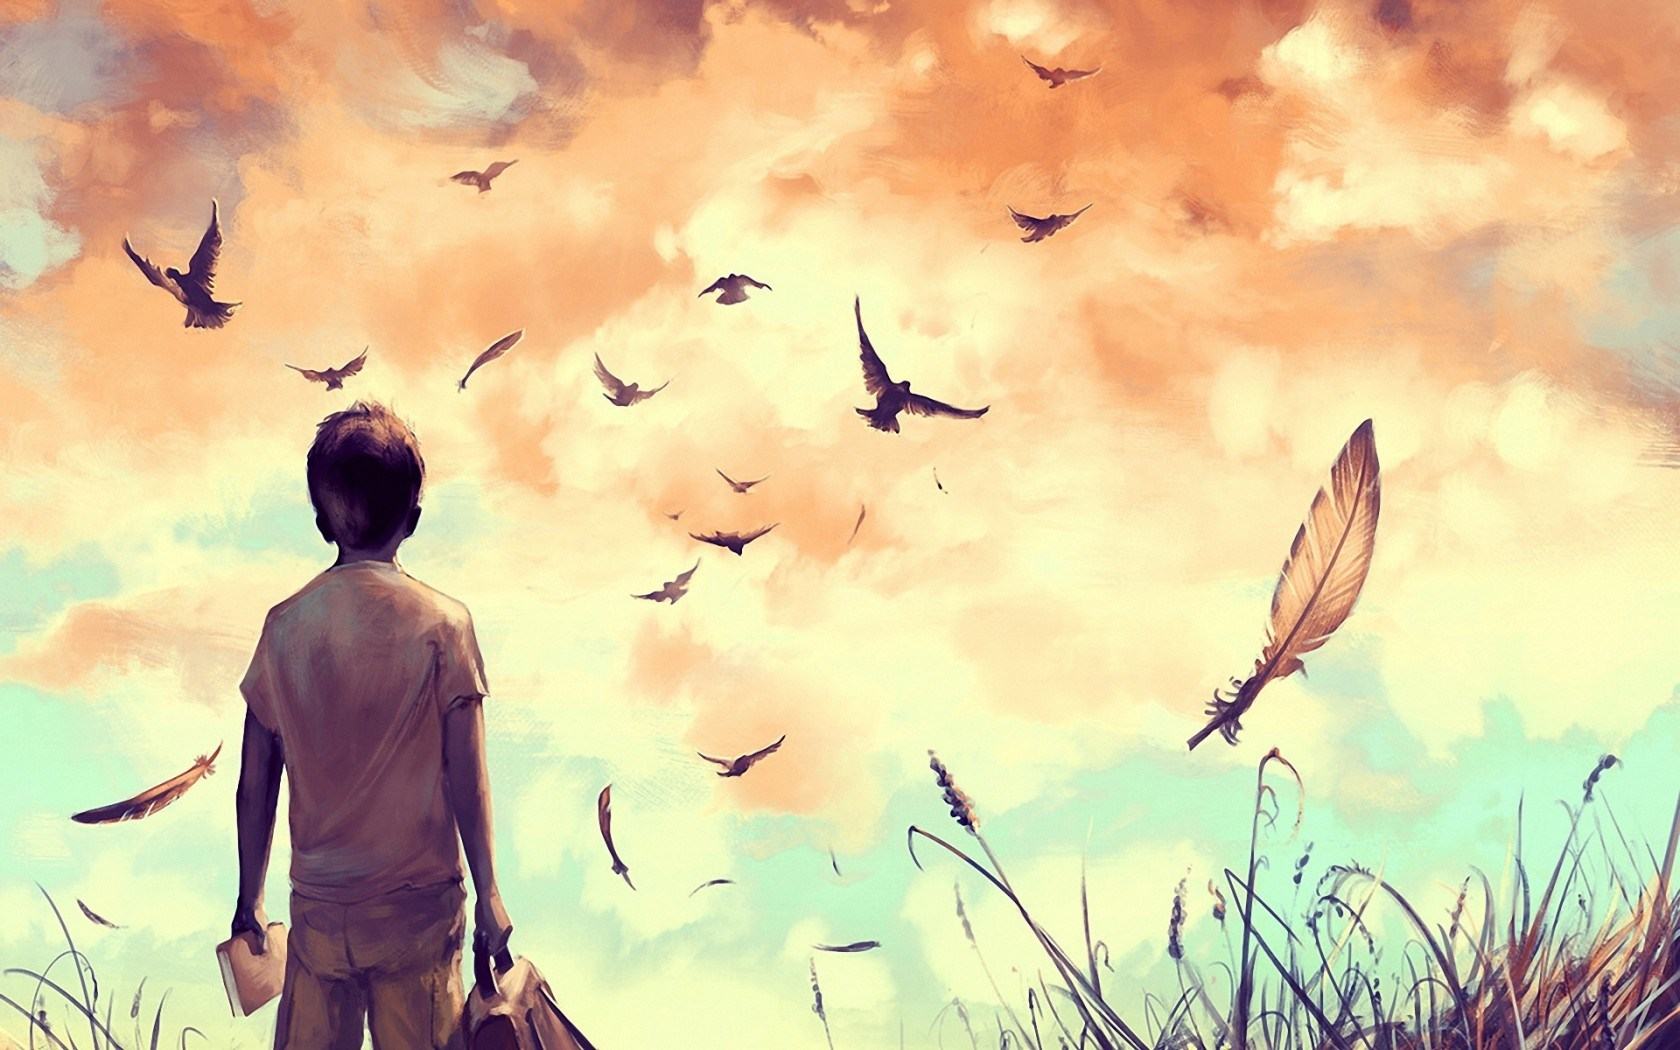 Boy Birds Sky Mood Artwork HD Wallpaper